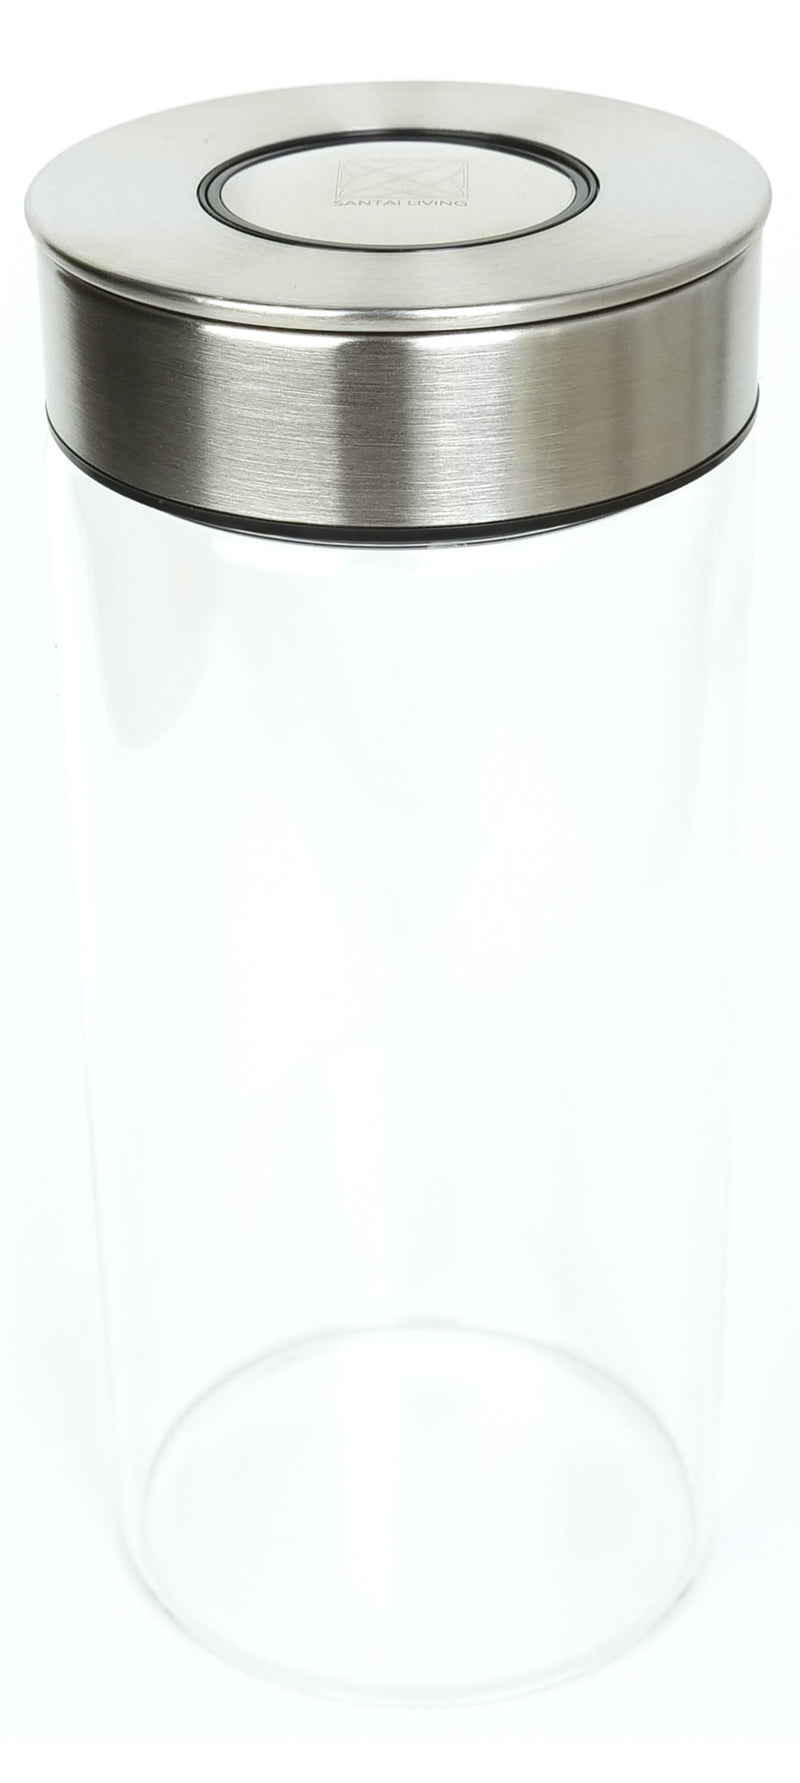 Air Tight Food Storage Container - 1500 ML